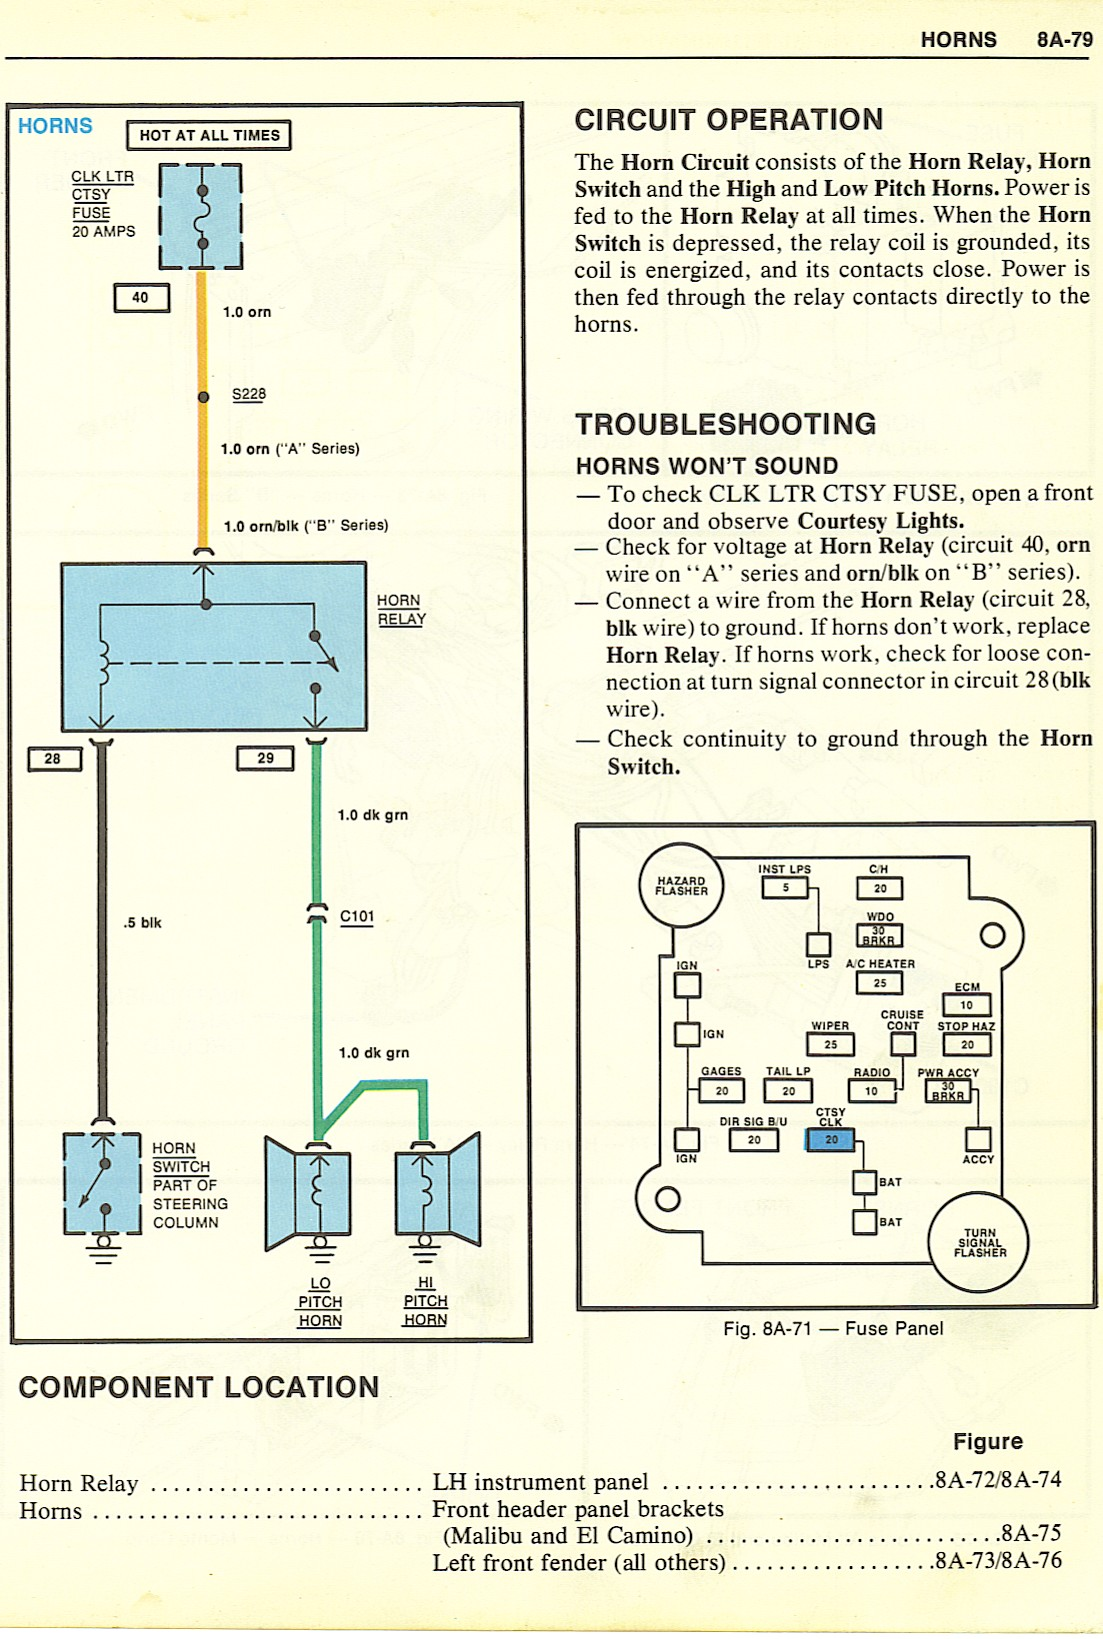 1982 chevy c10 wiring diagram air conditioning 83 monte wiring diagram help gbodyforum  78  88 general motors  83 monte wiring diagram help